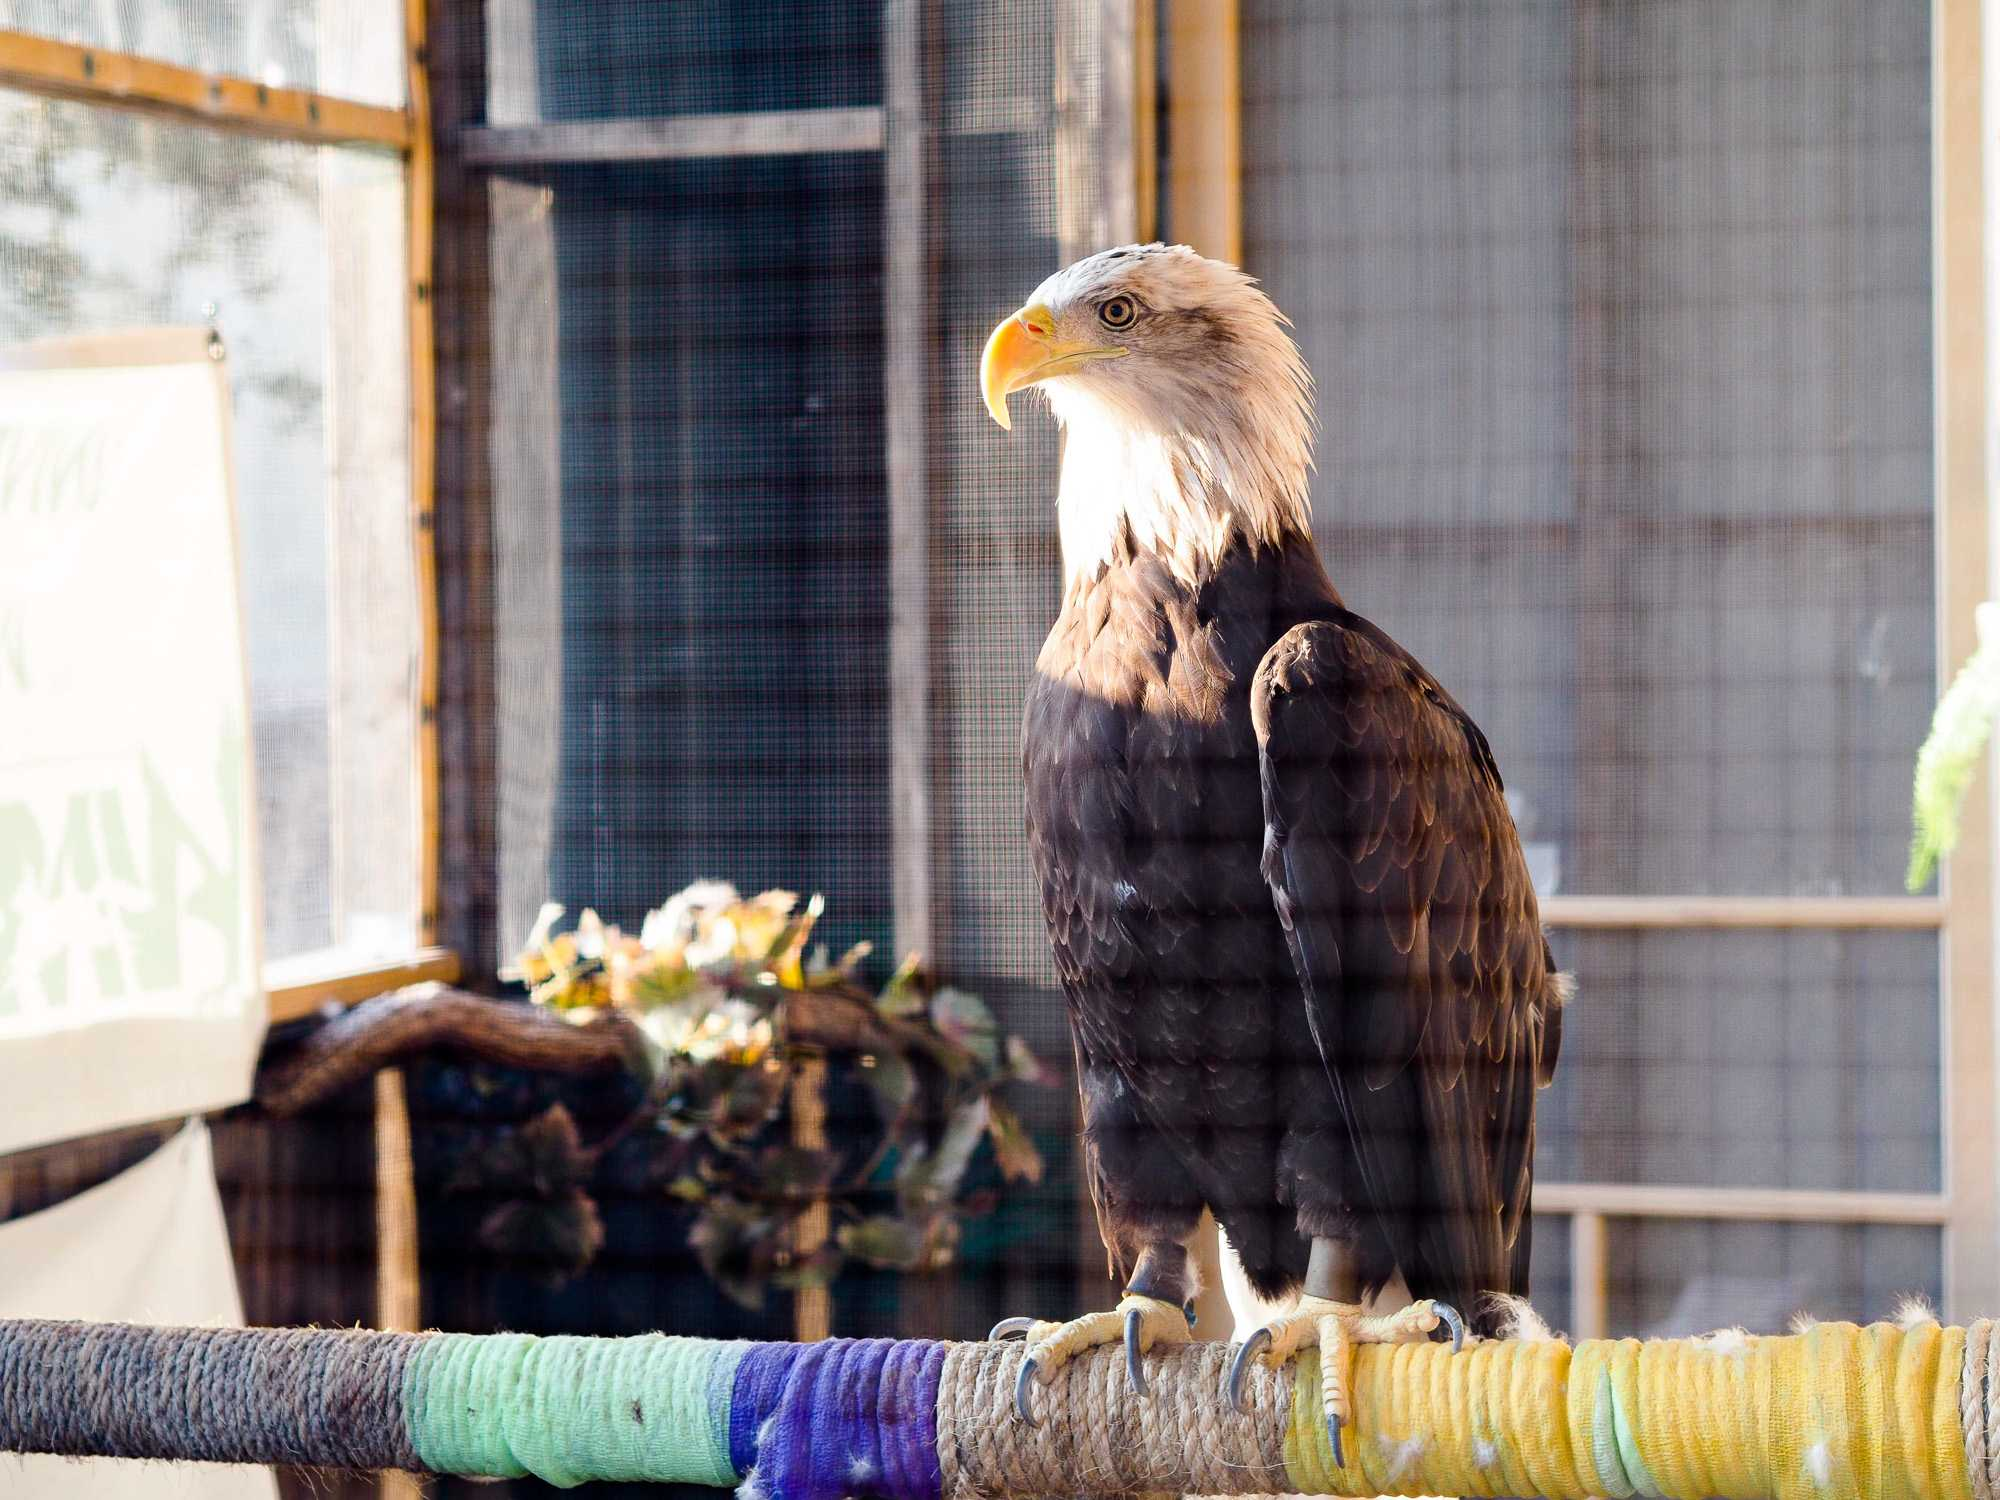 Behind the Vet Med Basic Sciences Building on Sept. 6, a newly introduced bald eagle named Rose has found a home in Urbana.